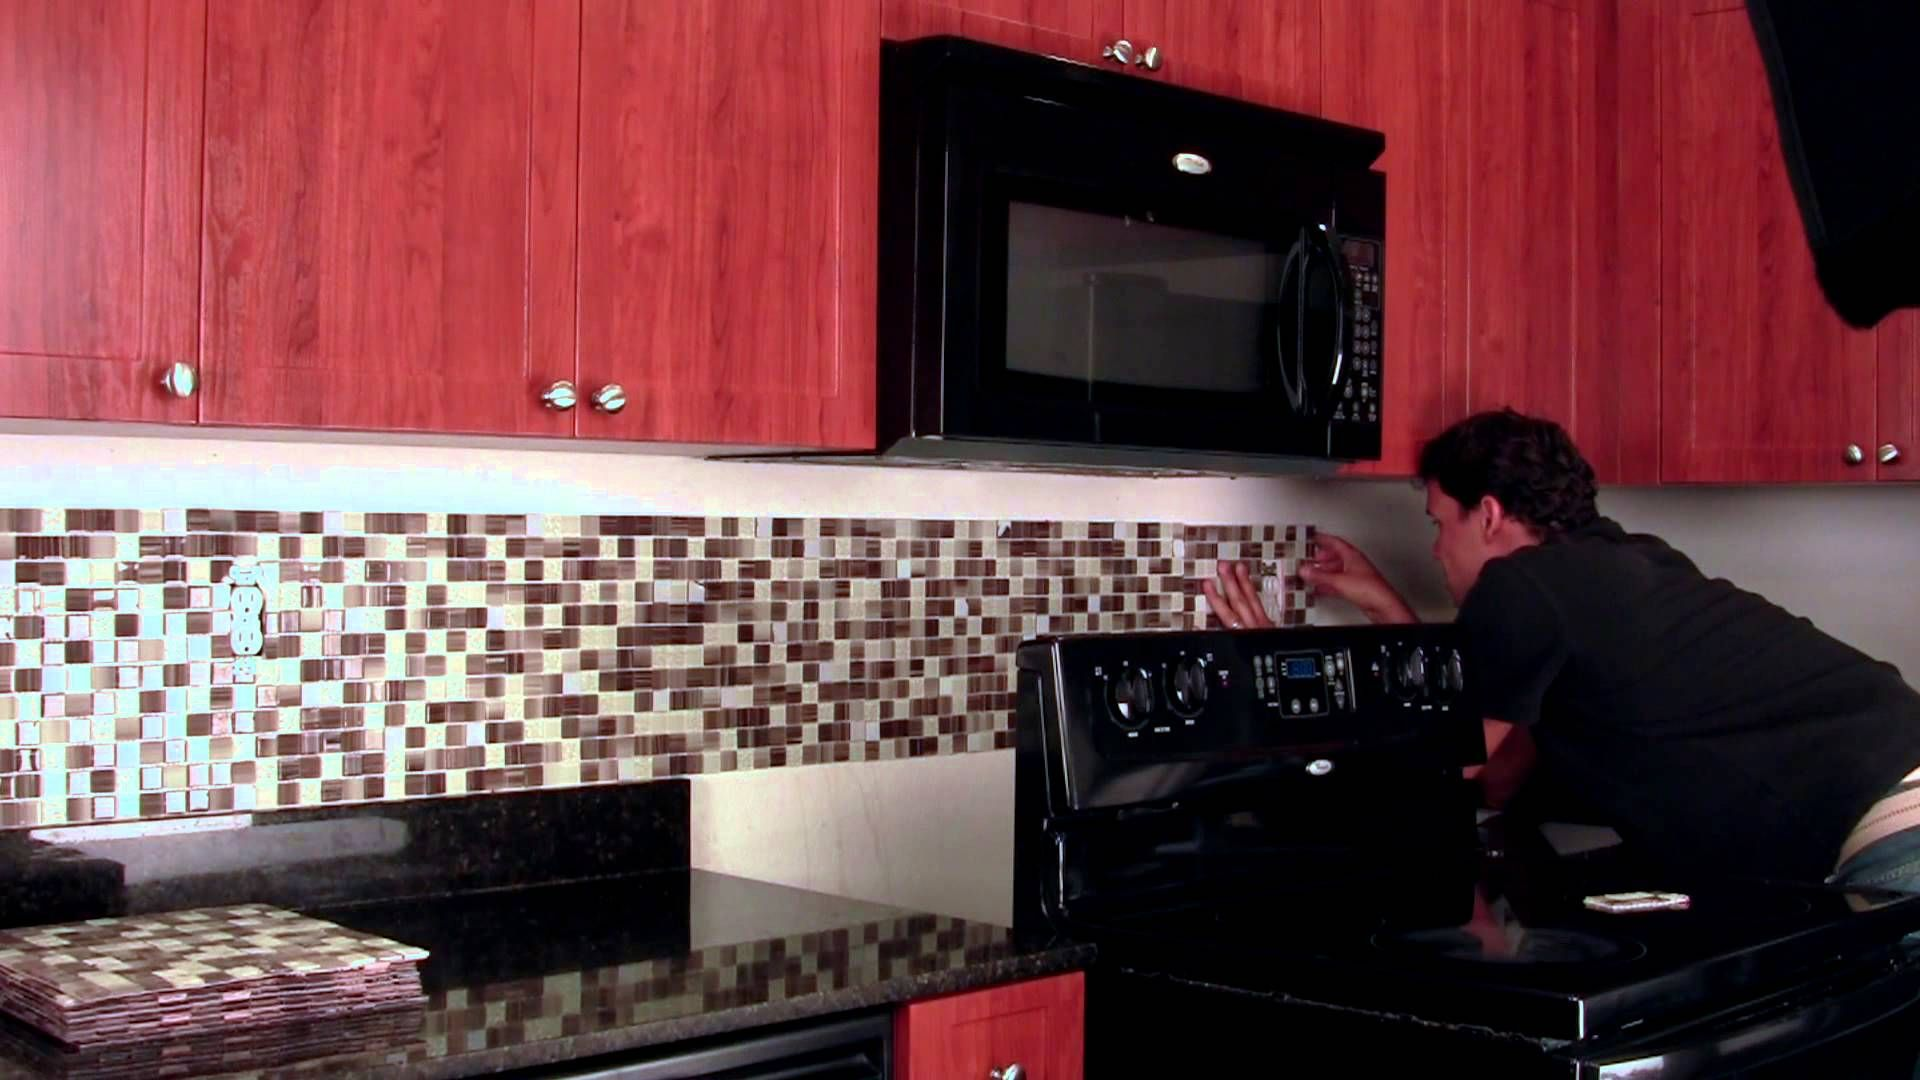 Peel Stick Backsplash Mosaic Tiles Available In Many Colors And